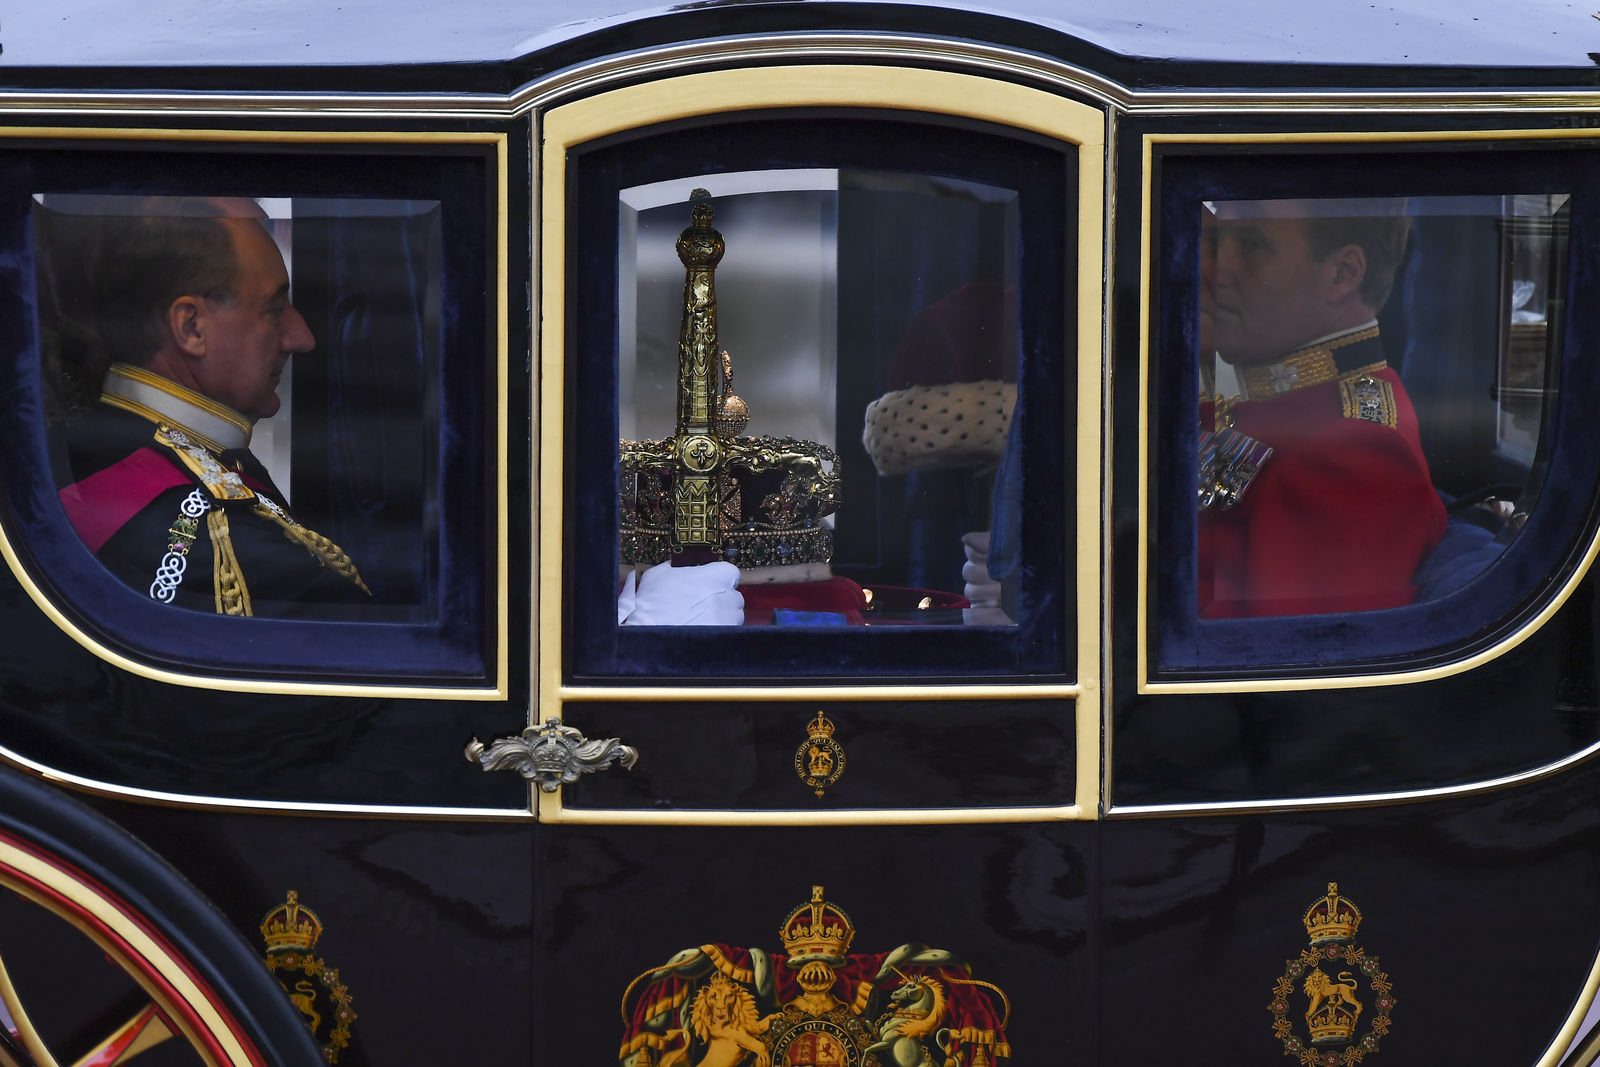 The Imperial State Crown is carried to parliament by carriage ahead of the State Opening of Parliament ceremony in London, Monday, Oct. 14, 2019. (AP Photo/Alberto Pezzali)